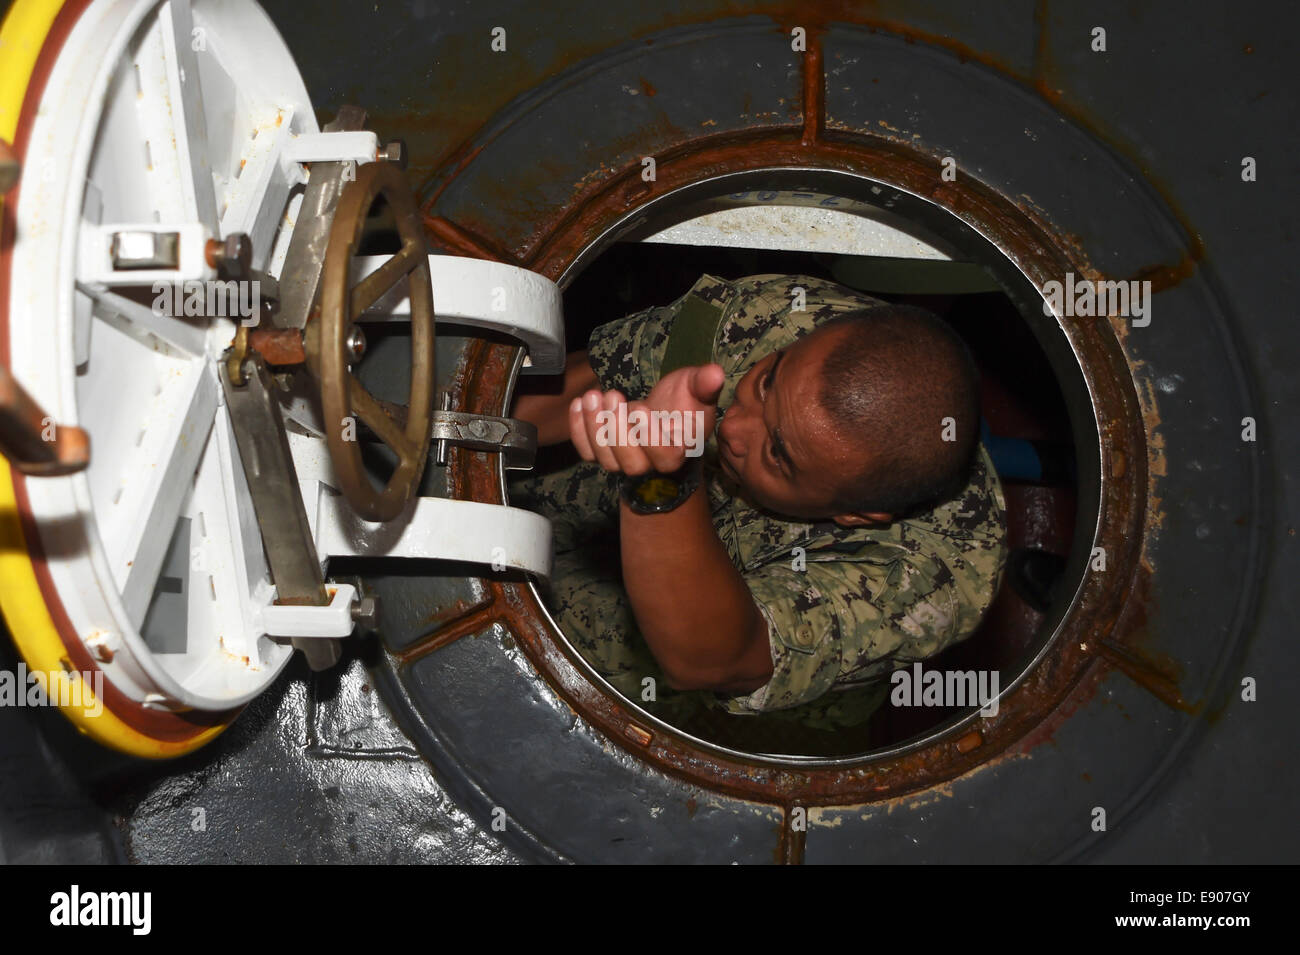 U.S. Navy Machinist's Mate 1st Class Ariel Ancheta climbs out of a hatch while conducting a tour of a U.S. Navy - Stock Image